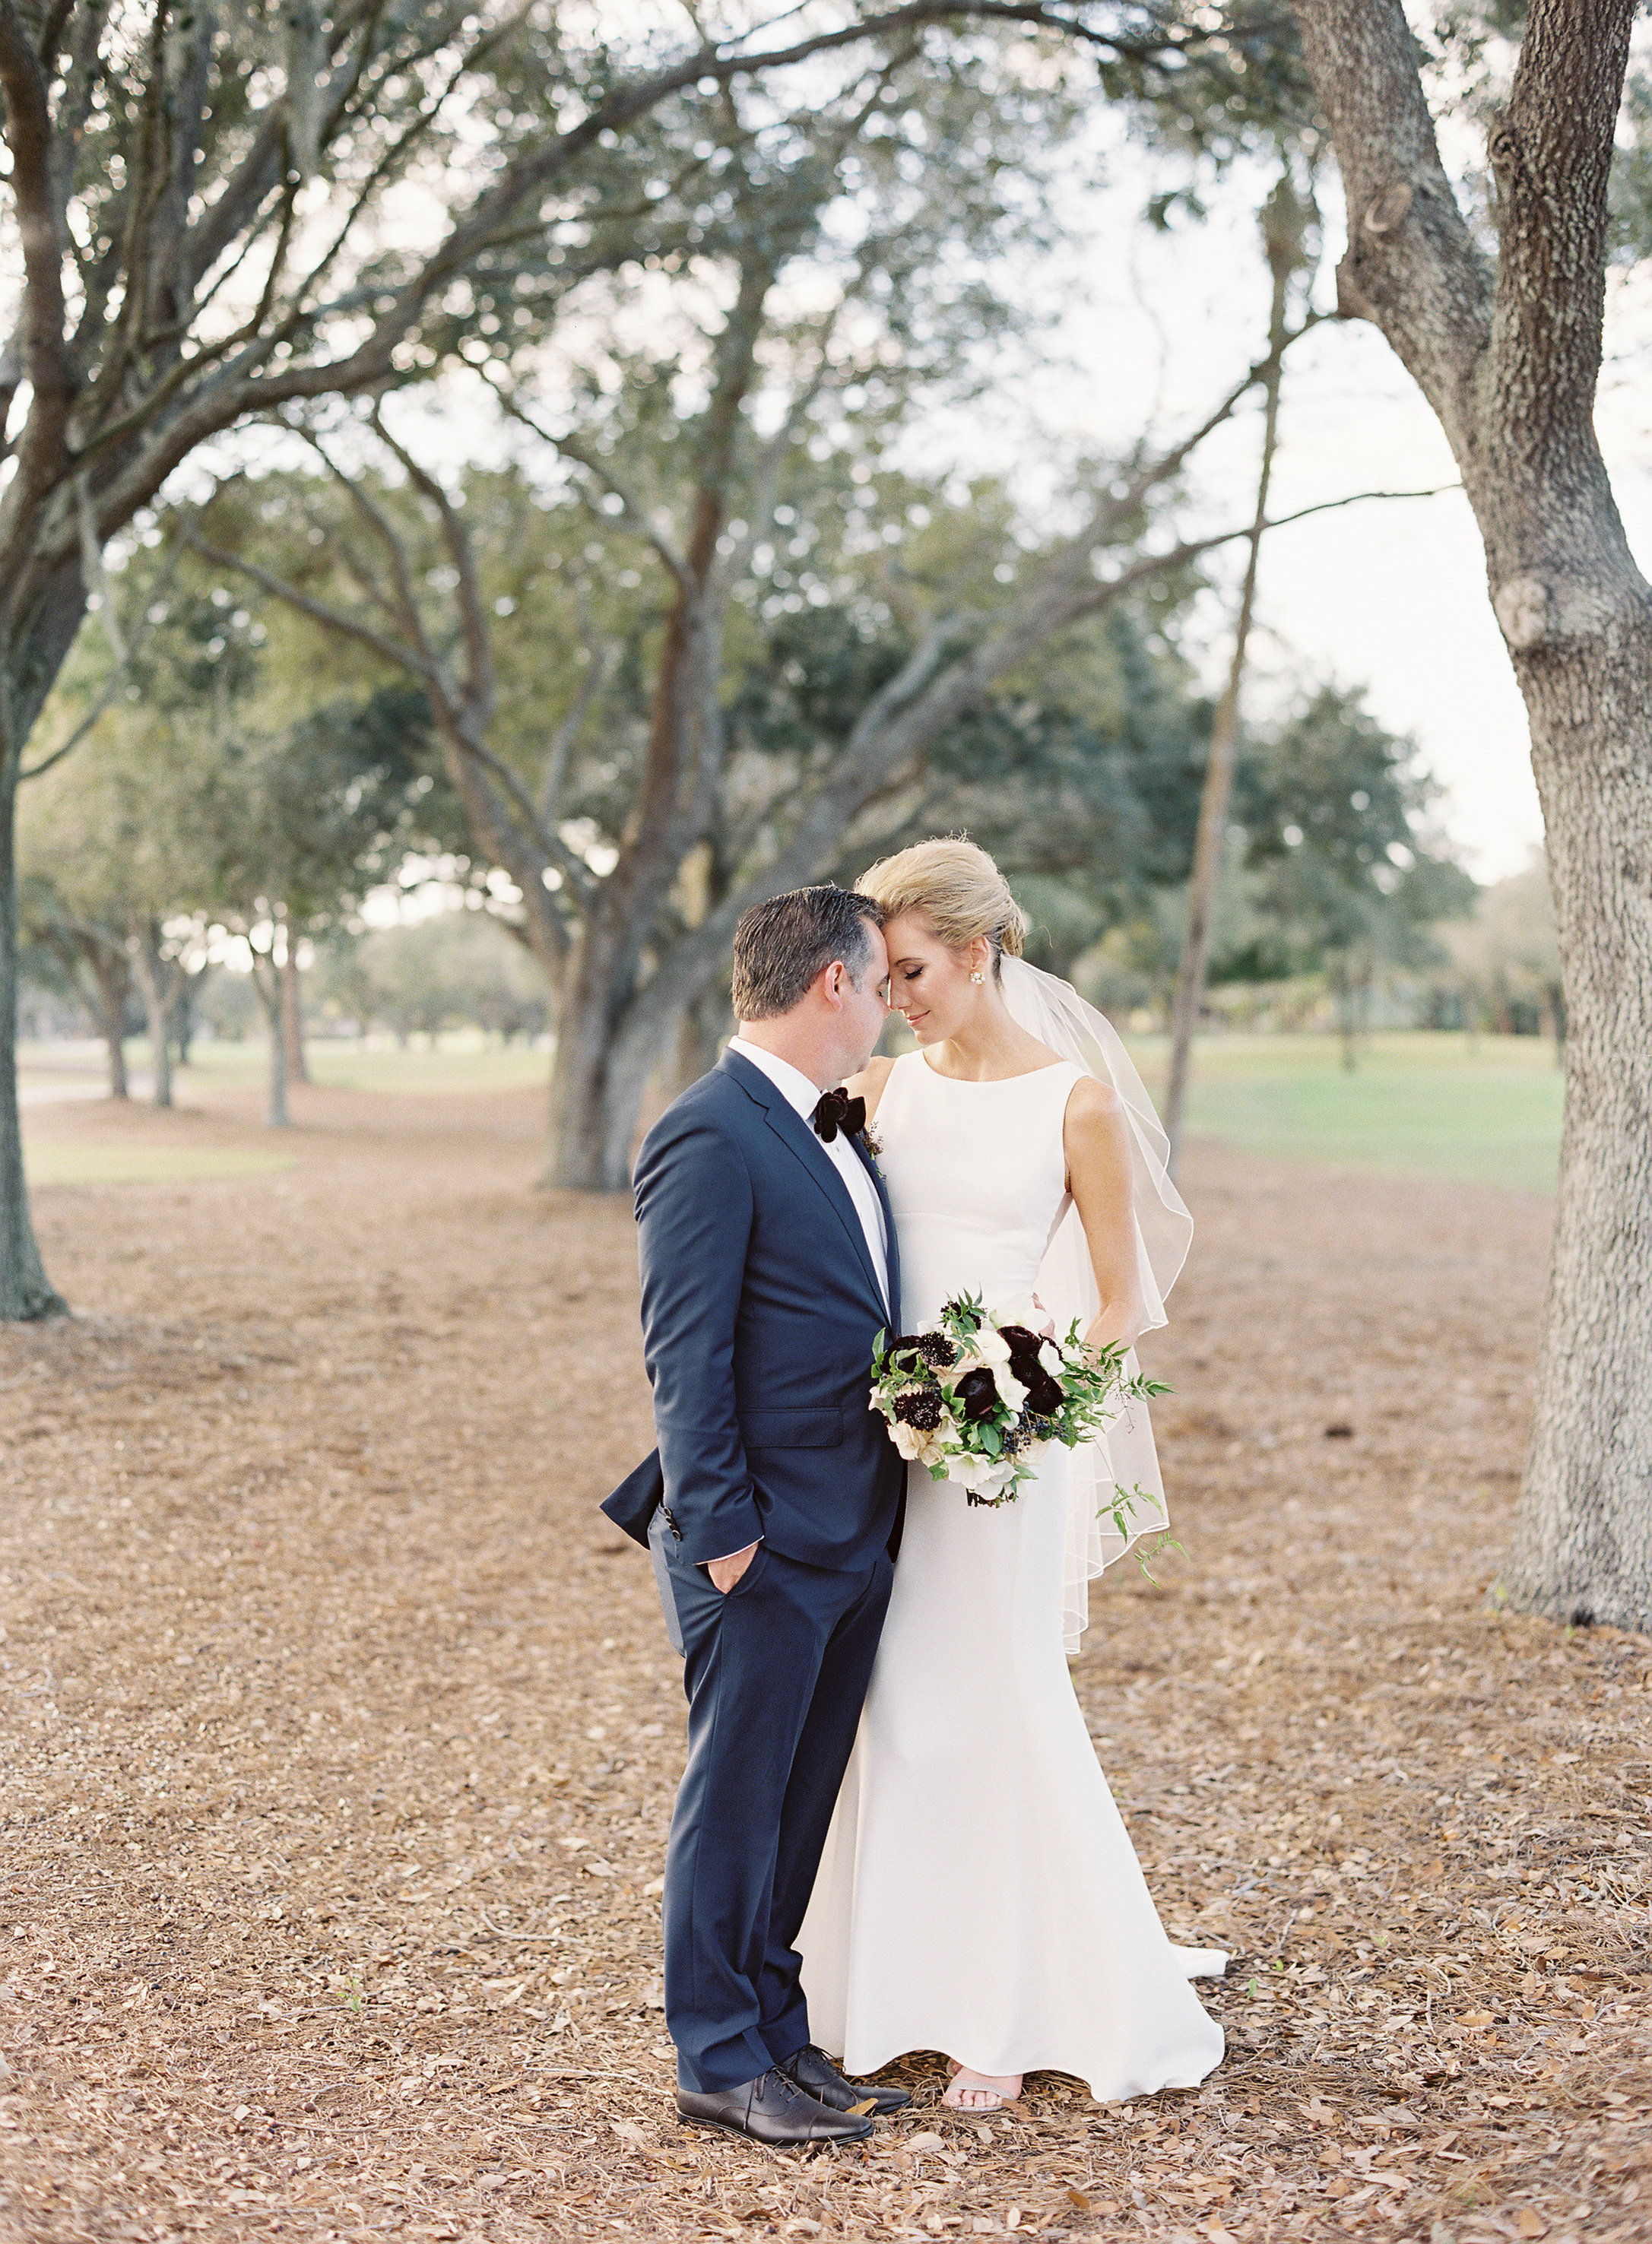 Elegant Wedding at Palma Ceia Golf & Country Club - Tracie Domino Events